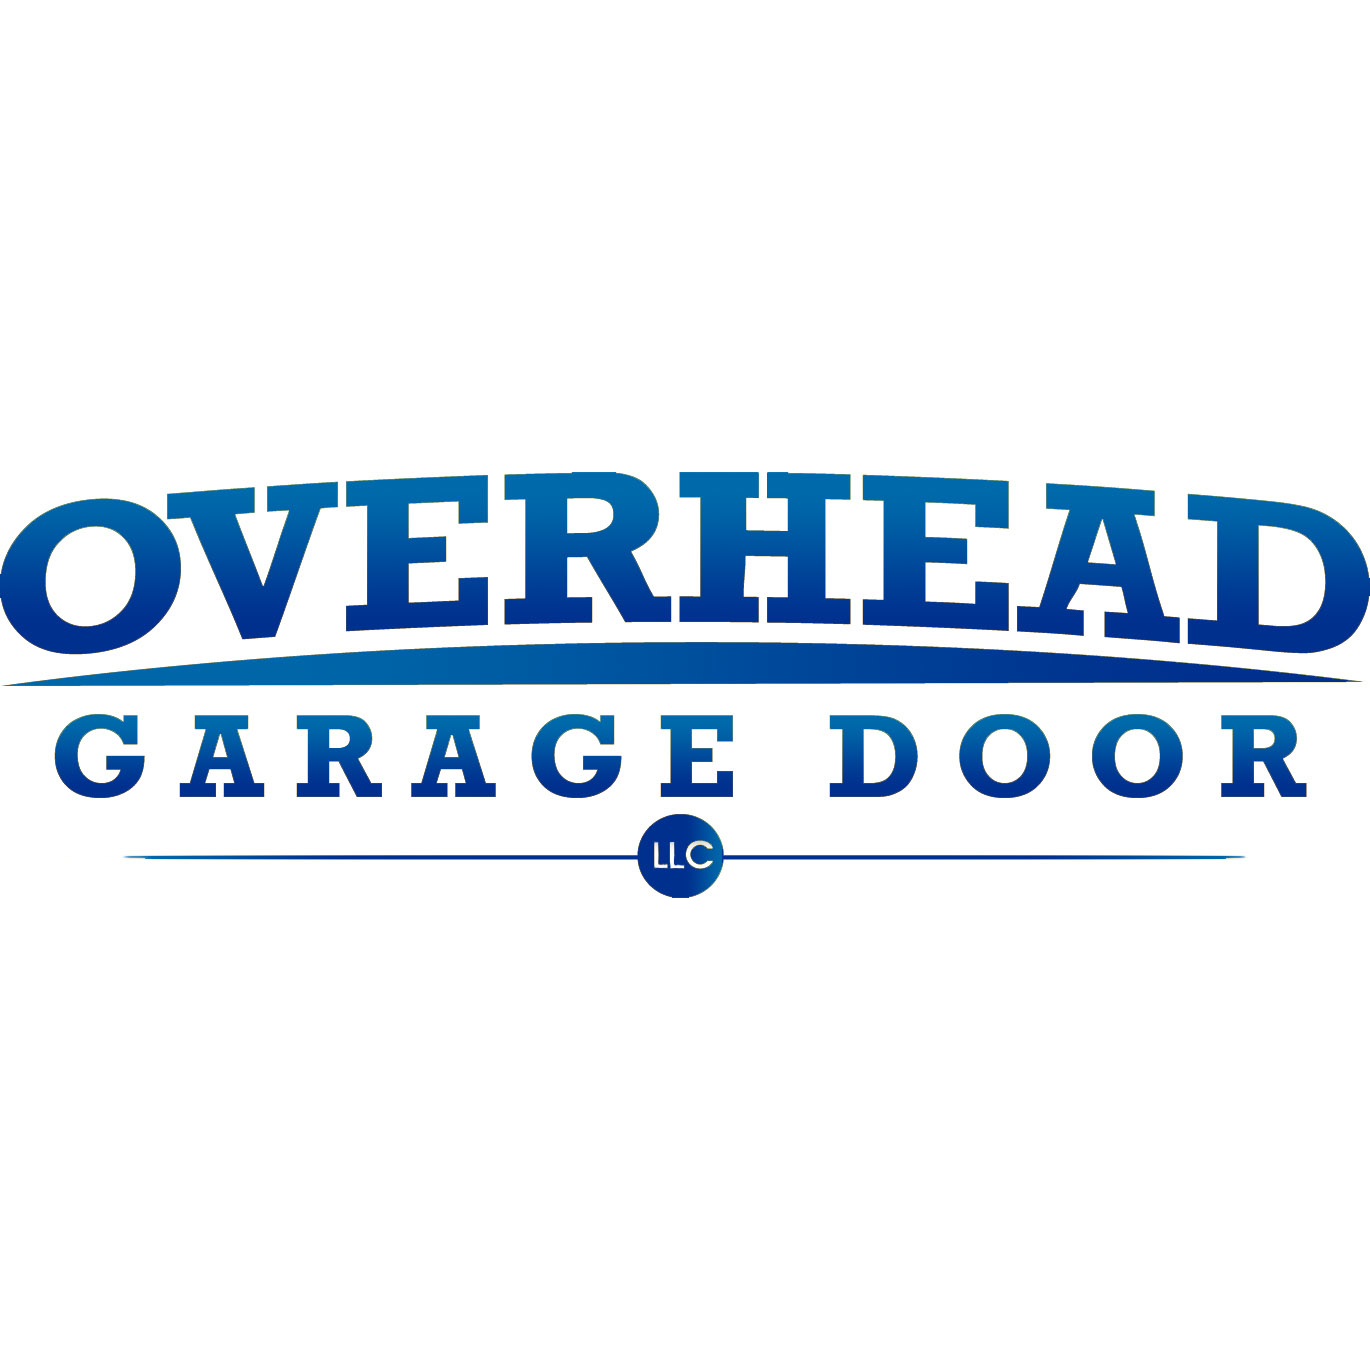 image of Overhead Garage Doors LLC